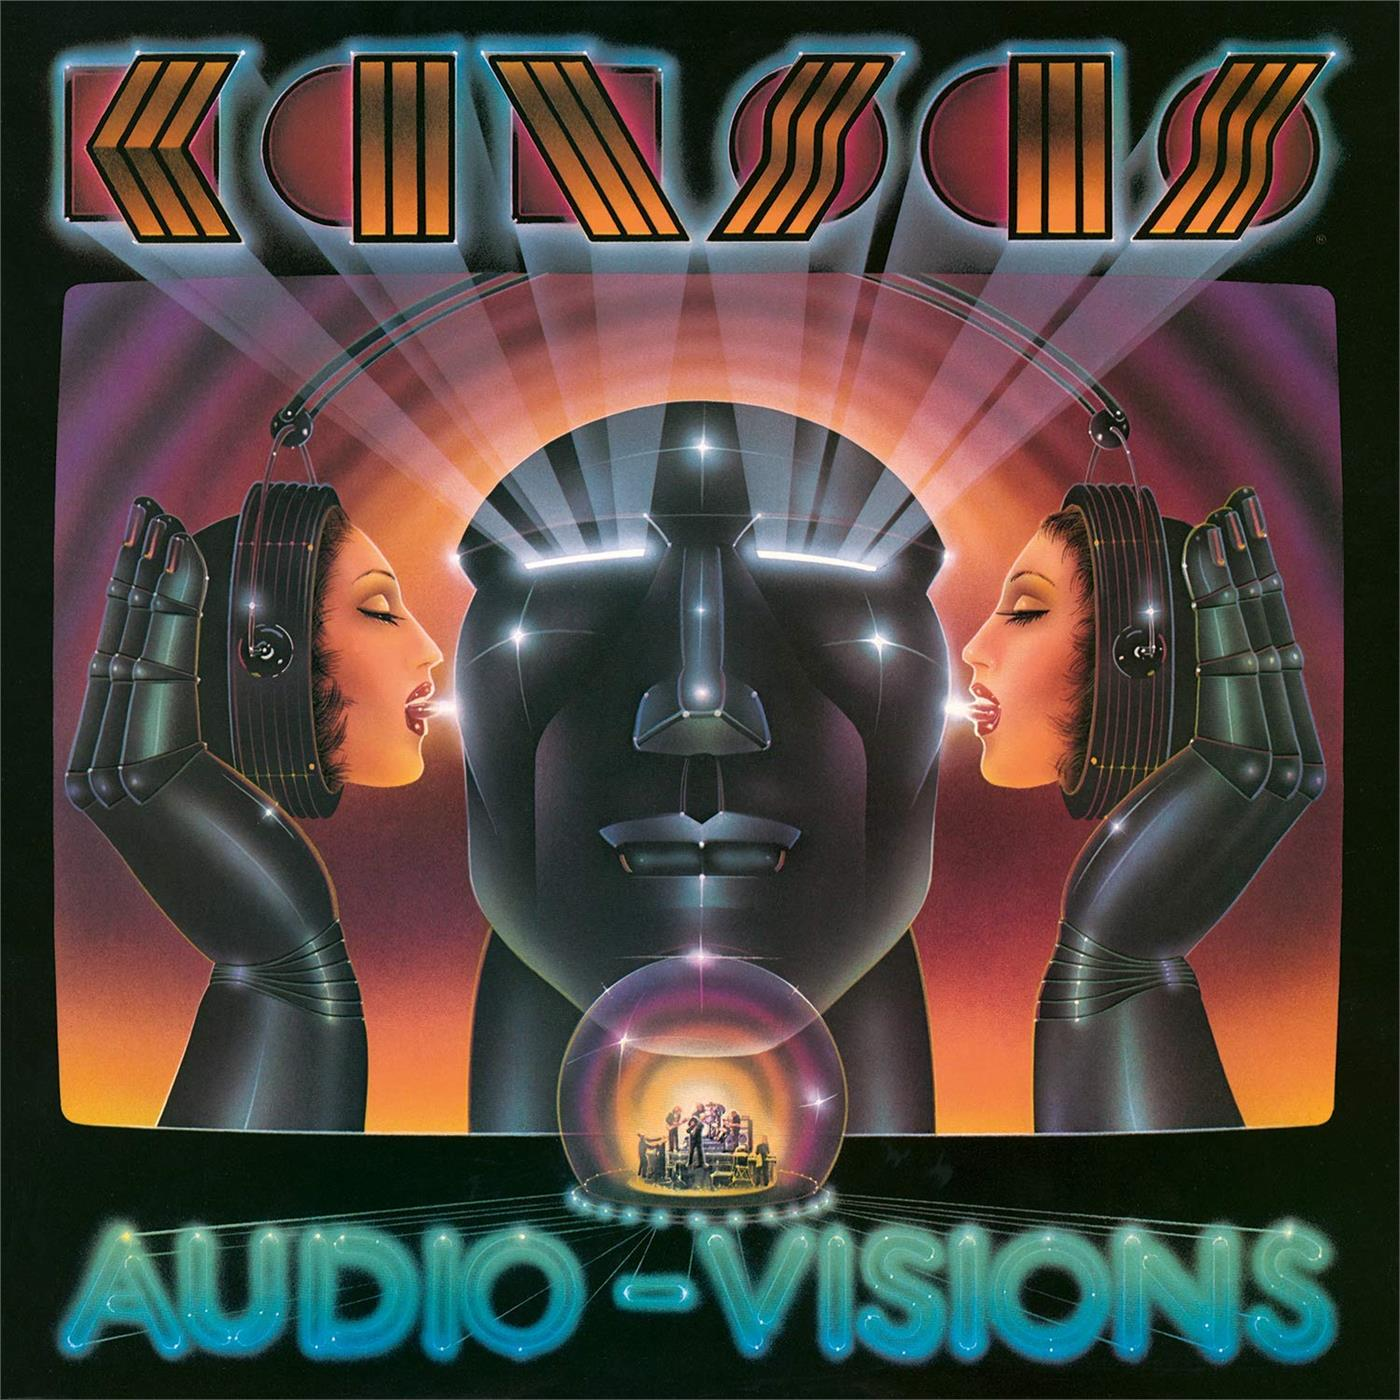 MOVLP2361 Music on Vinyl  Kansas Audio-Visions - LTD (LP)